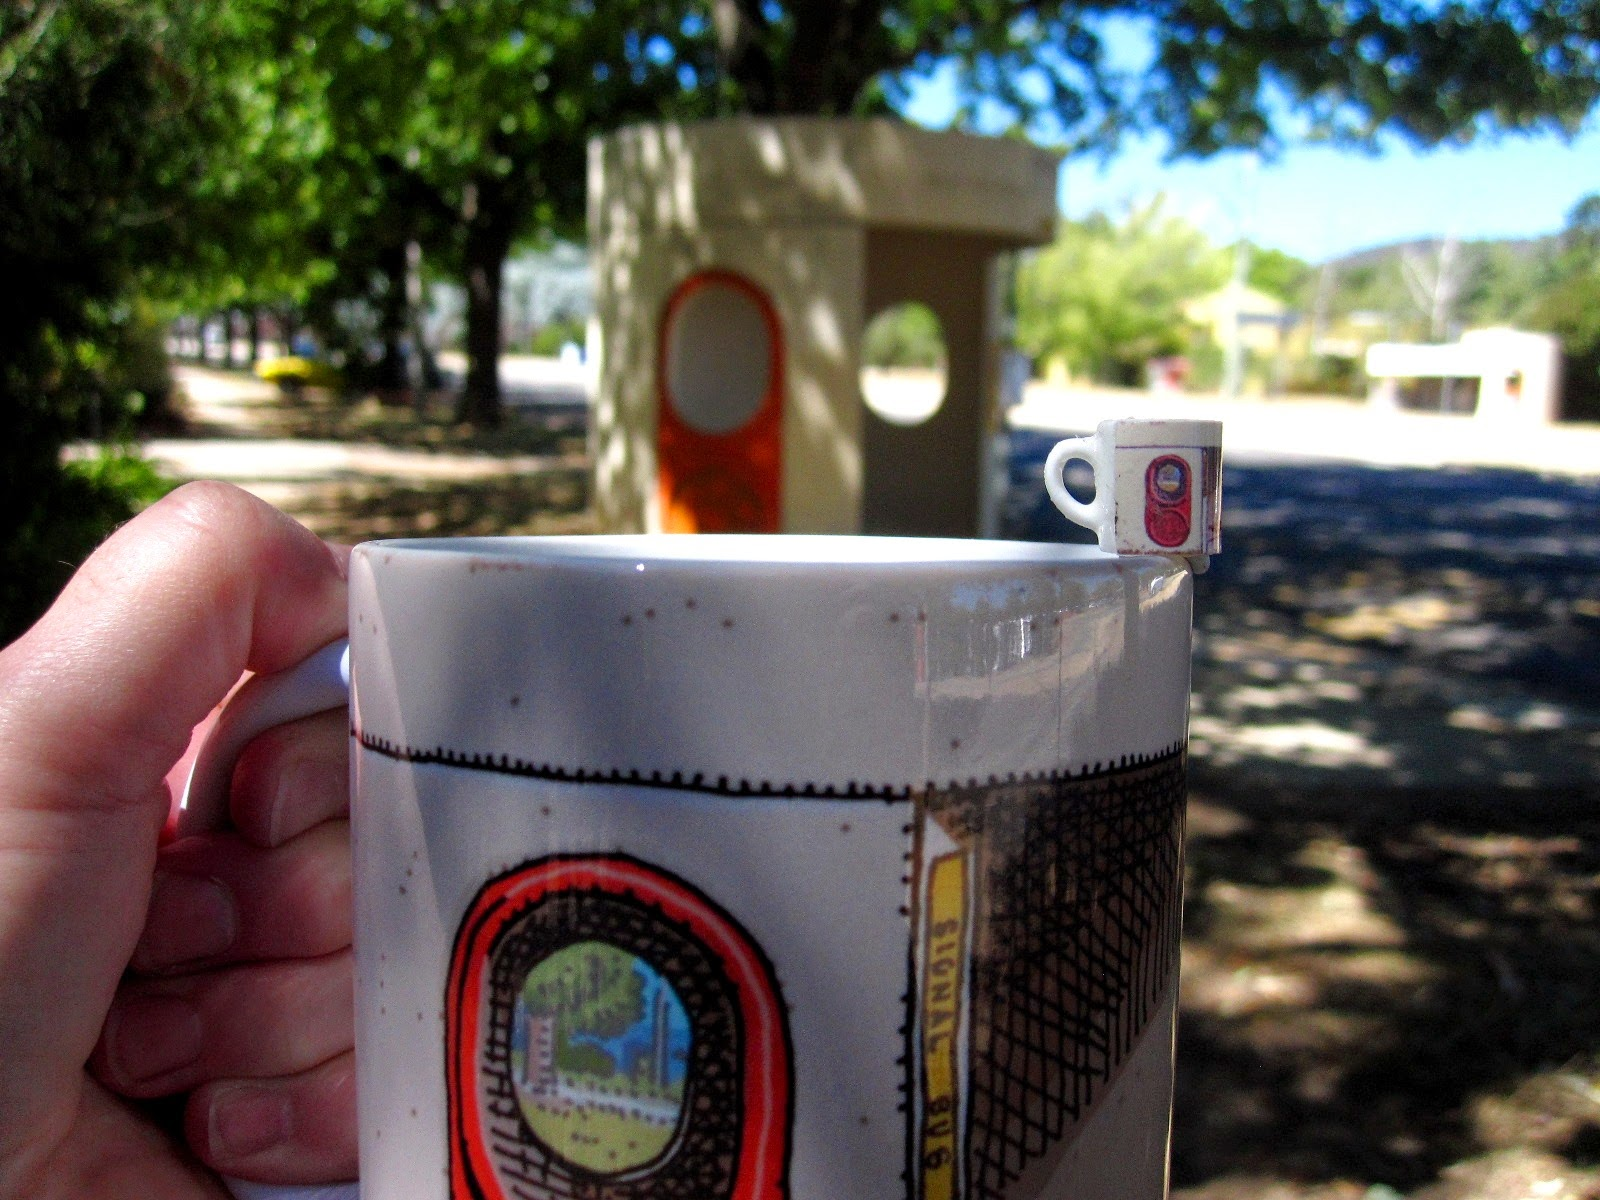 Dolls' house miniature mug with a Canberra bus shelter print, balanced on the edge of a full-sized Canberra bus shelter mug, held in front of a Canberra bus shelter.